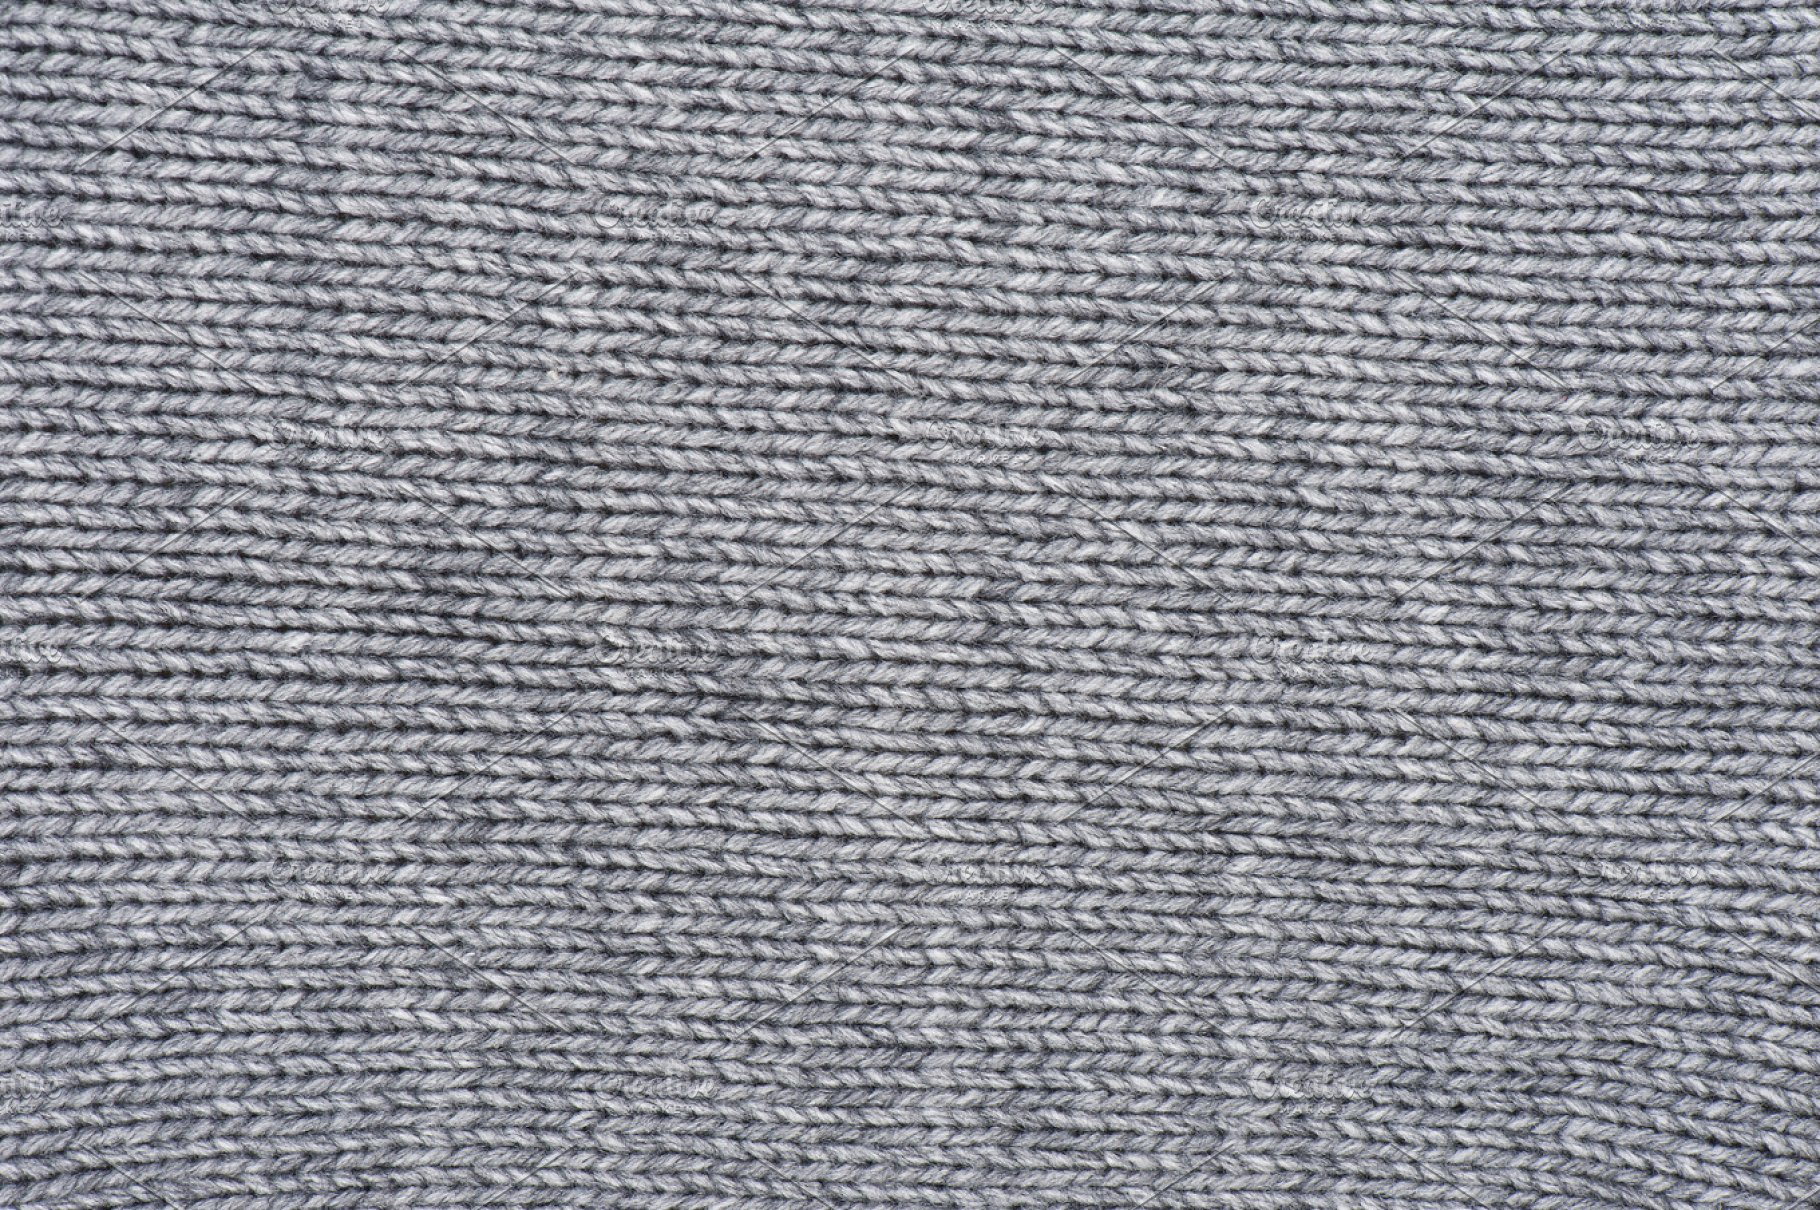 Wool texture | High-Quality Abstract Stock Photos ~ Creative Market